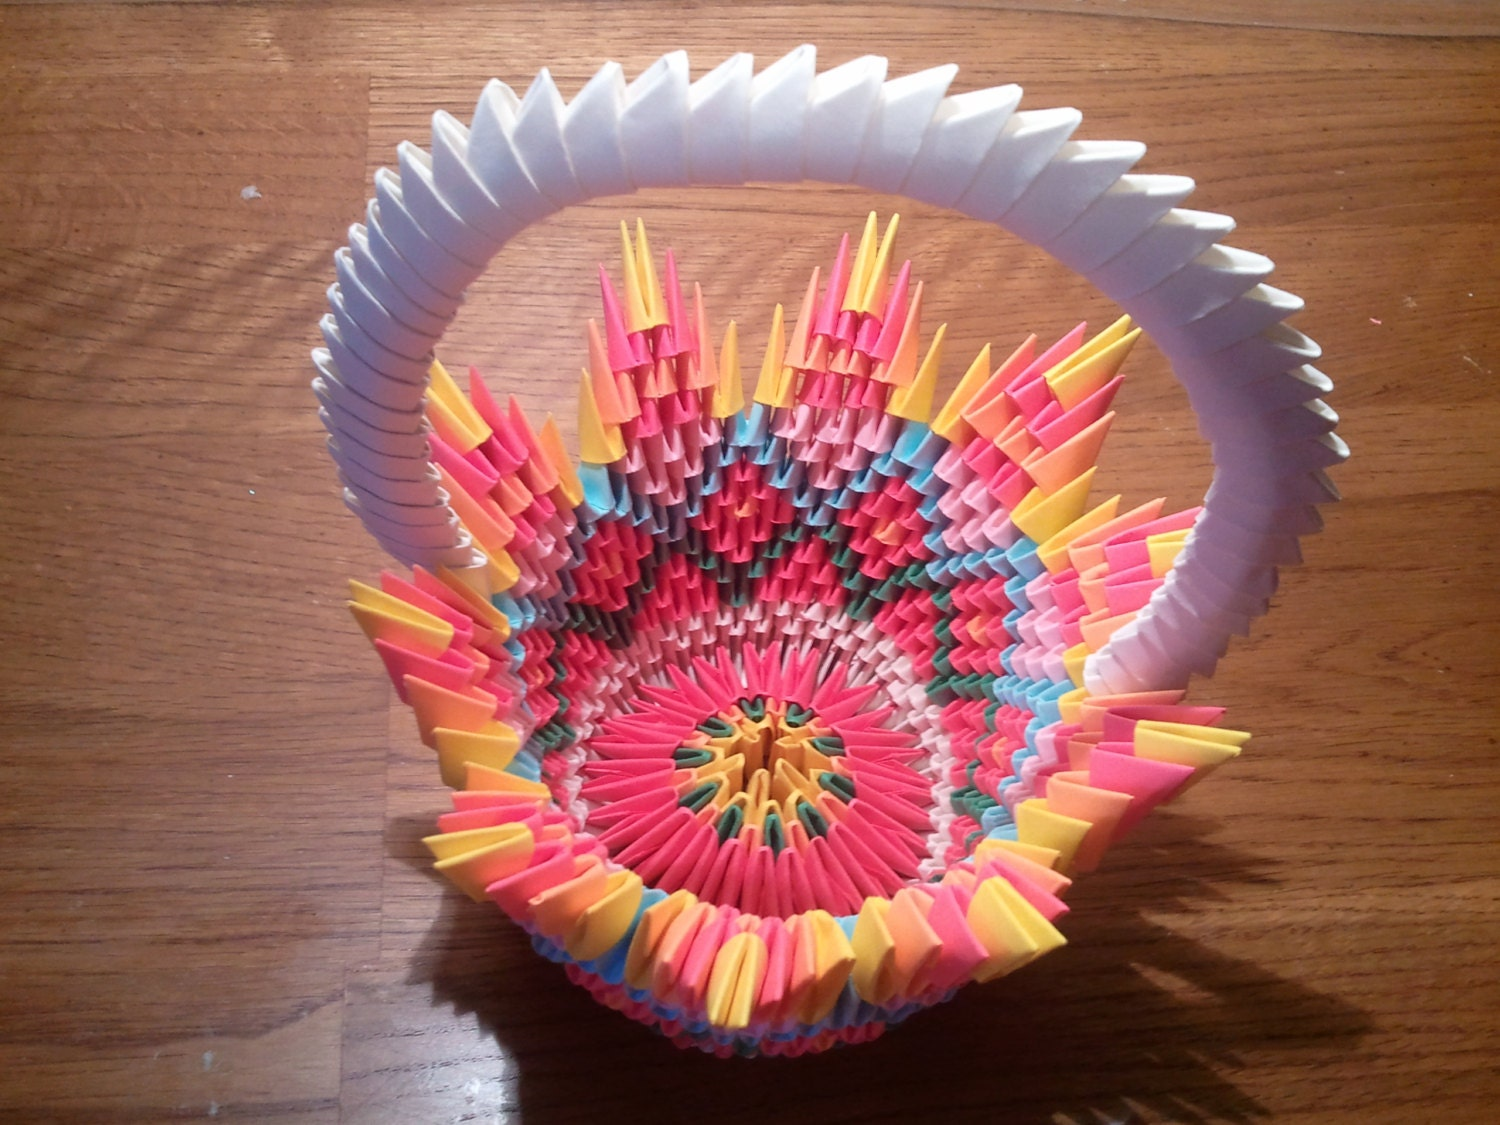 3D origami basket - photo#27